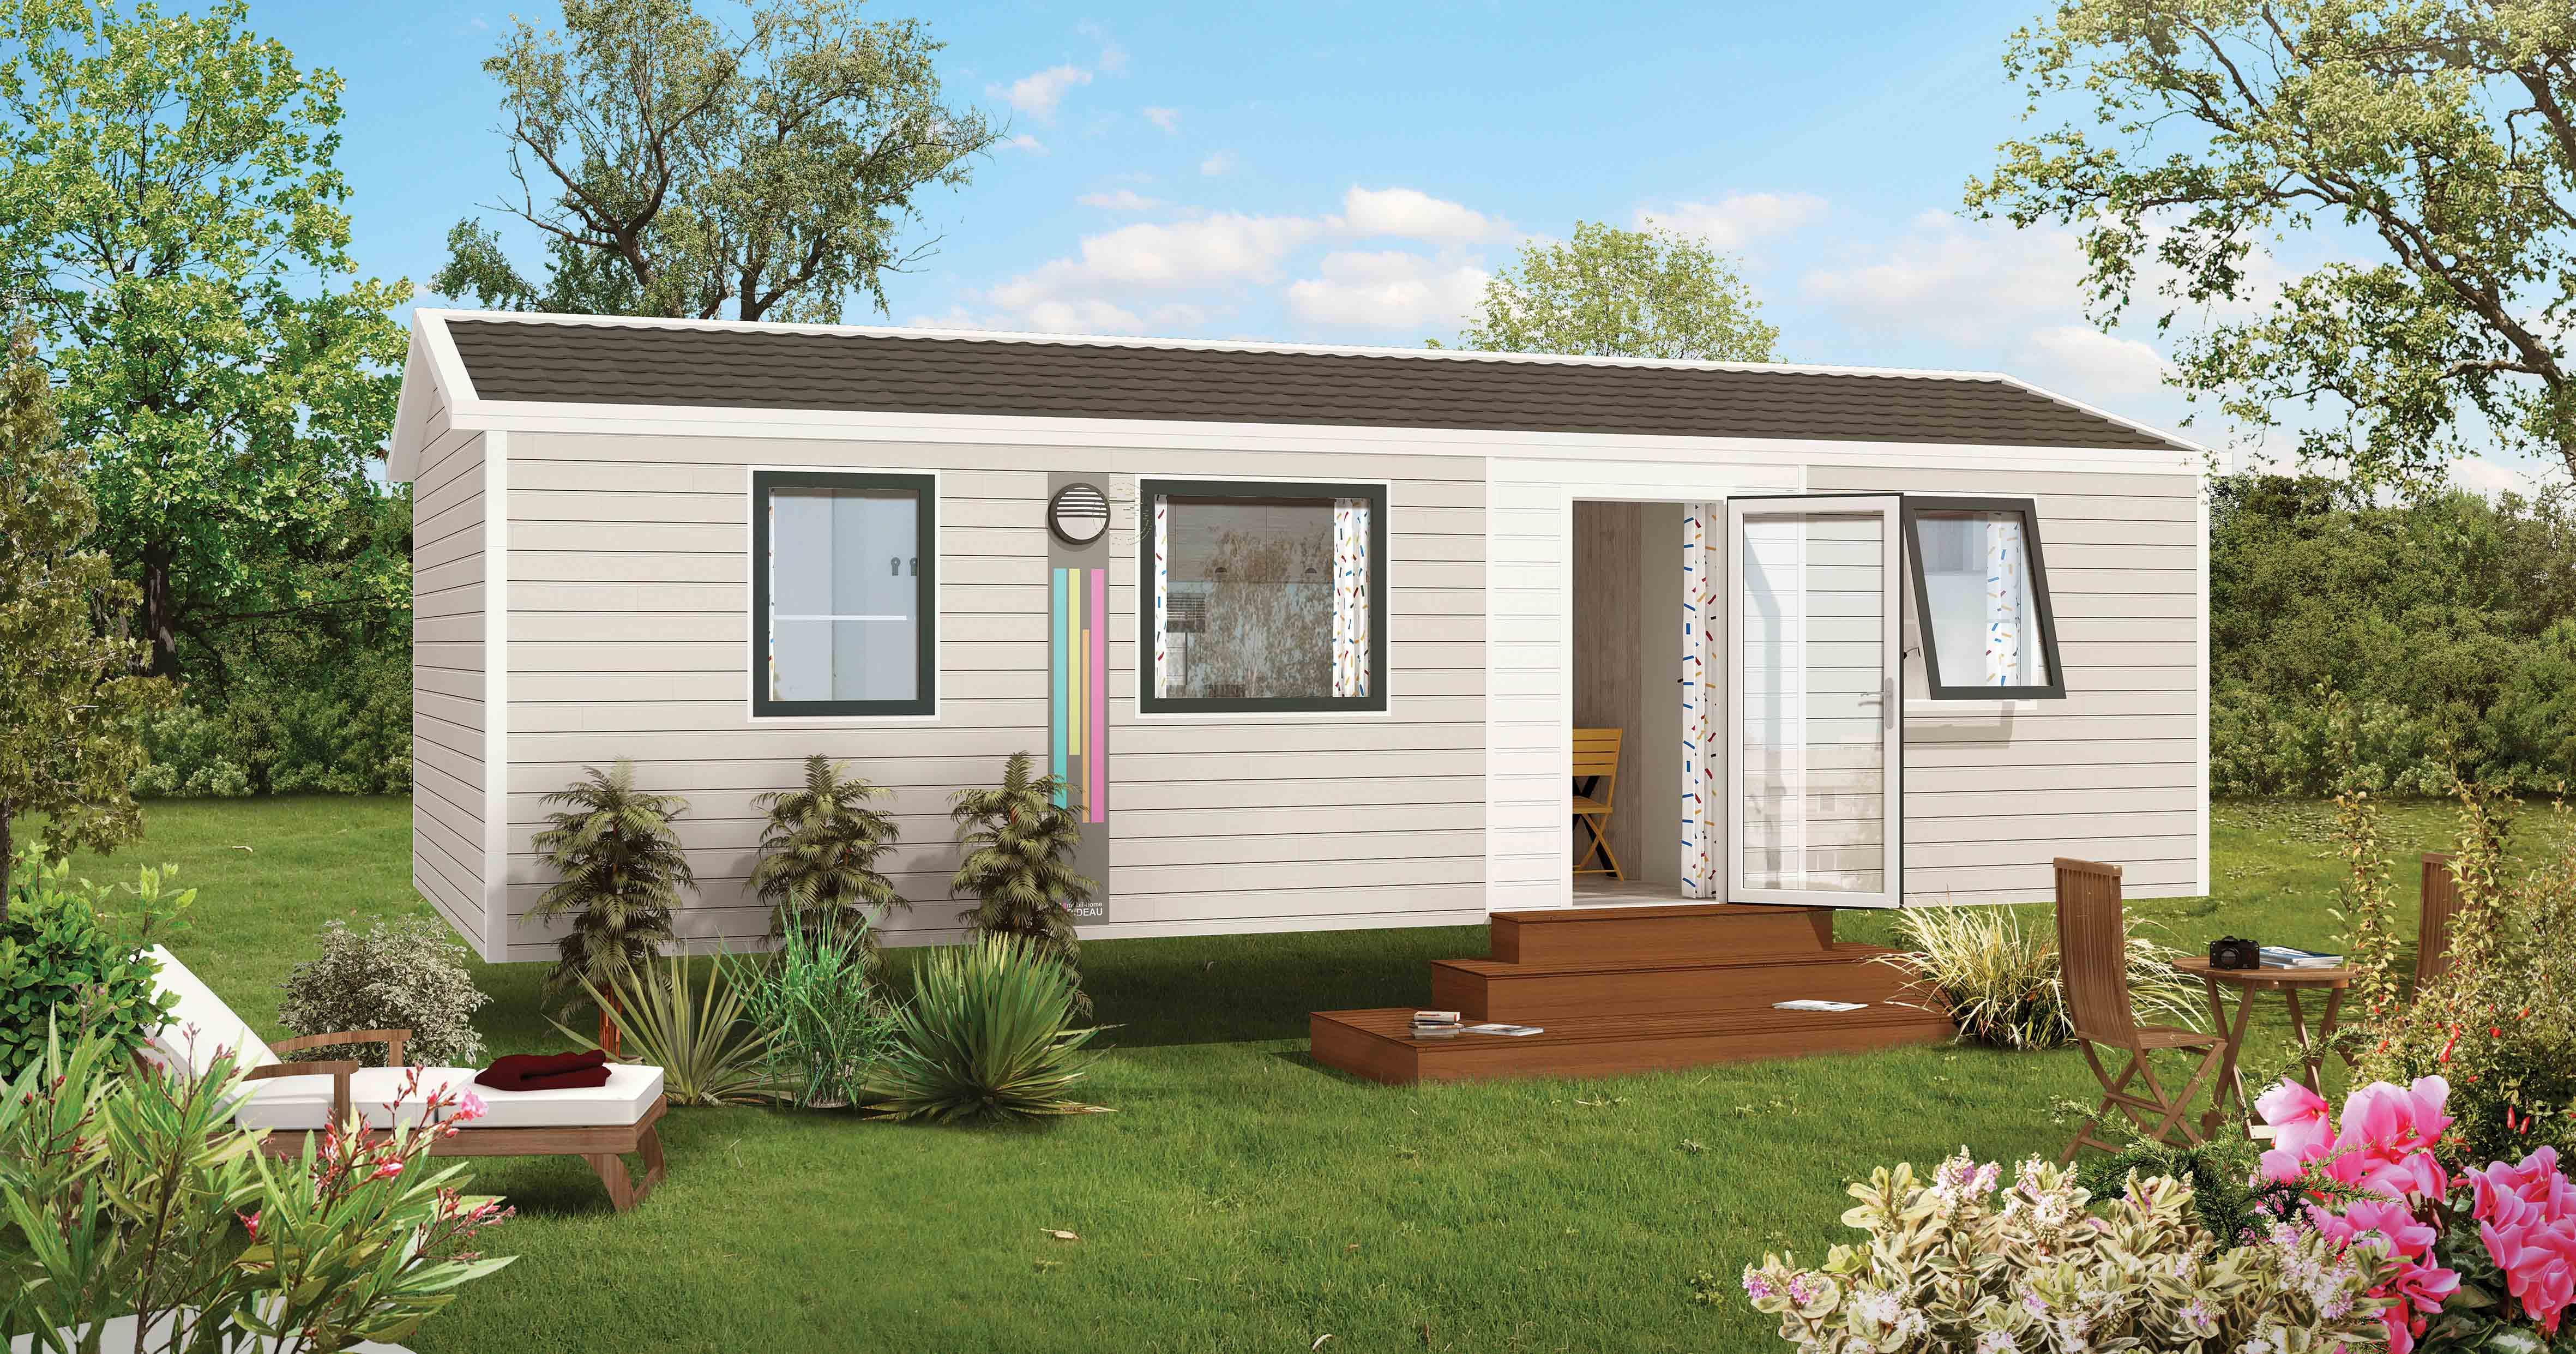 Locatifs - Mobile Home Nirvana Duo 32M² Avec Terrasse Semi Couverte - Camping Le Panoramic